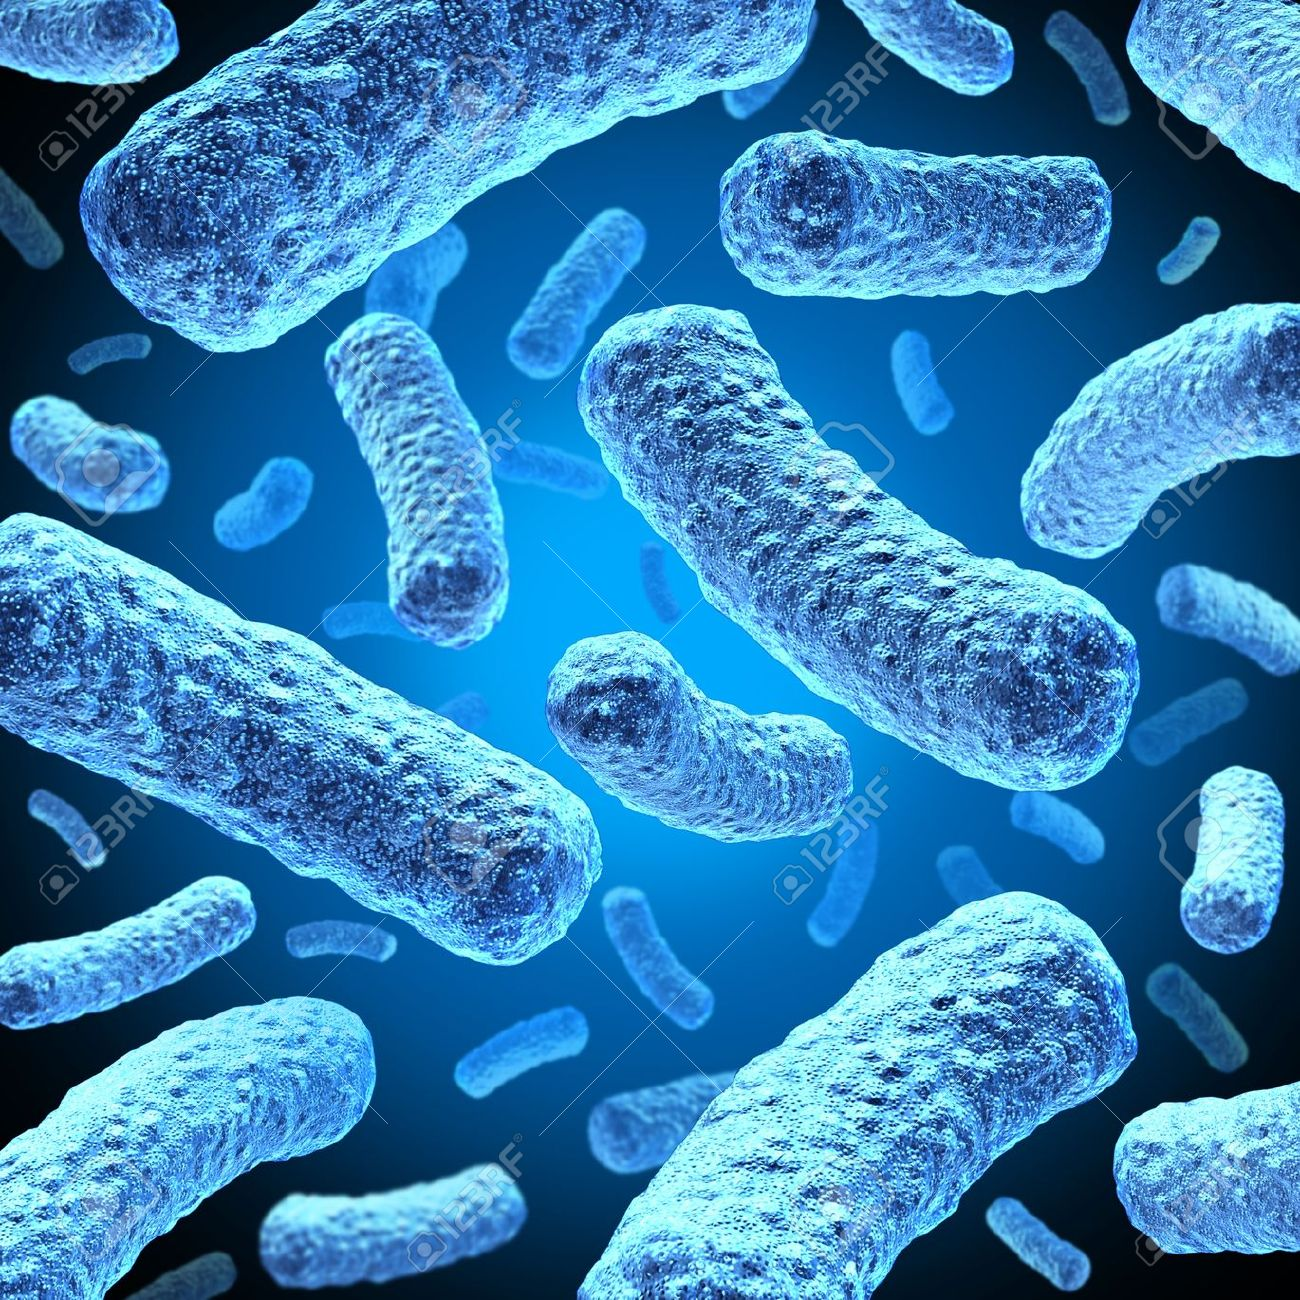 external image 12668156-Bacteria-and-bacterium-cells-floating-in-microscopic-space--Stock-Photo.jpg